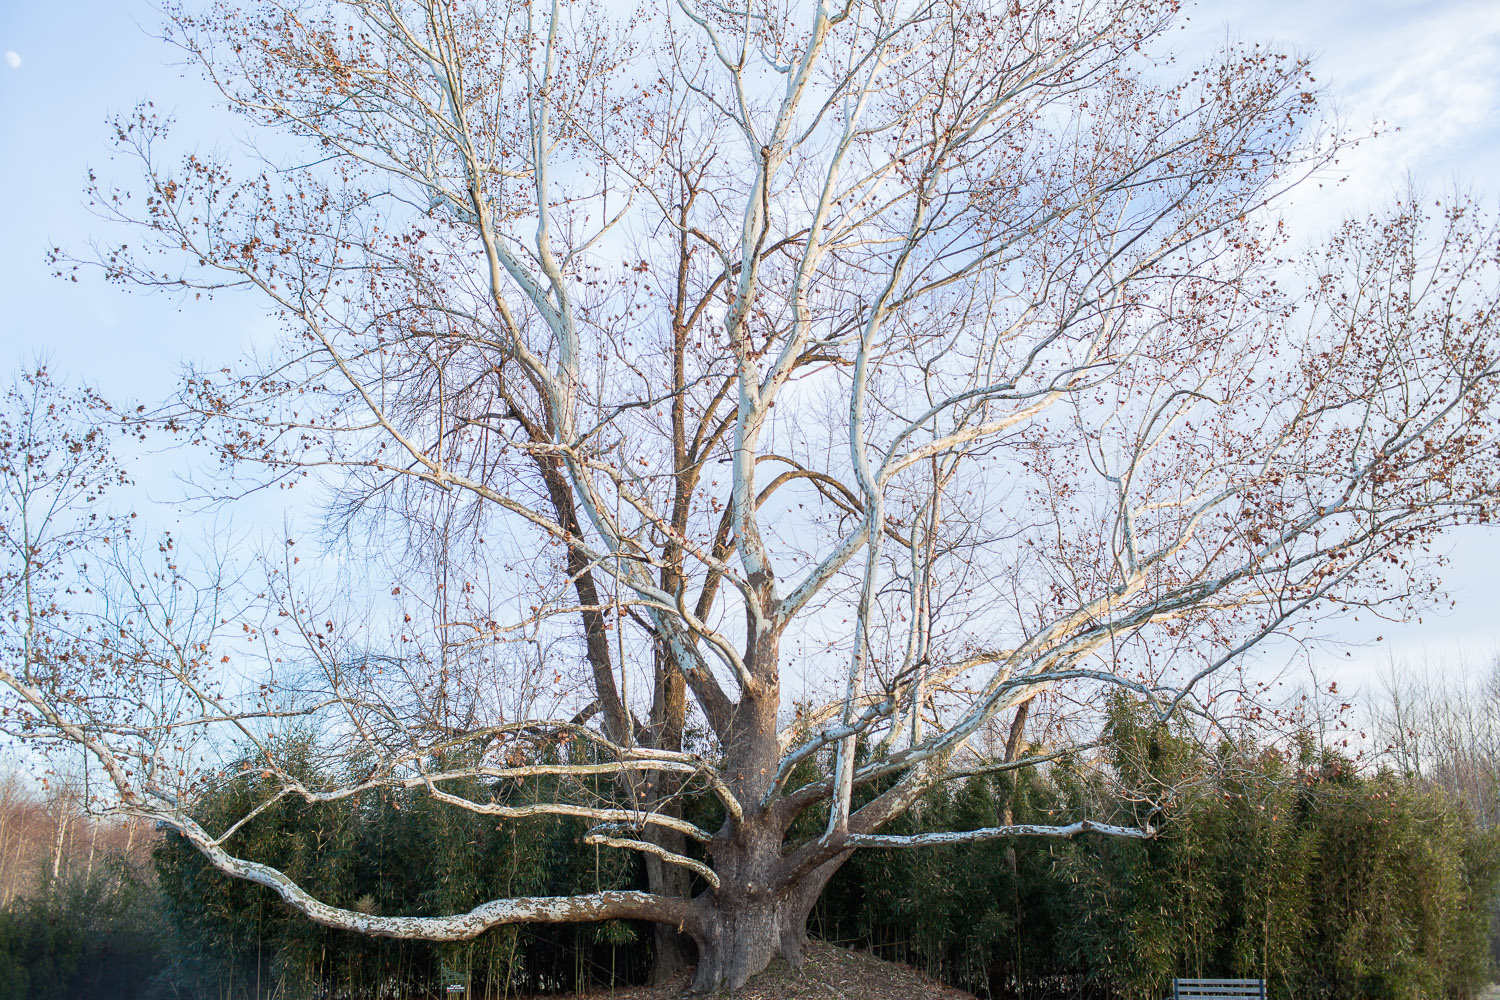 The Carahills II Historic Sycamore Tree is one of only 17 in Tennessee